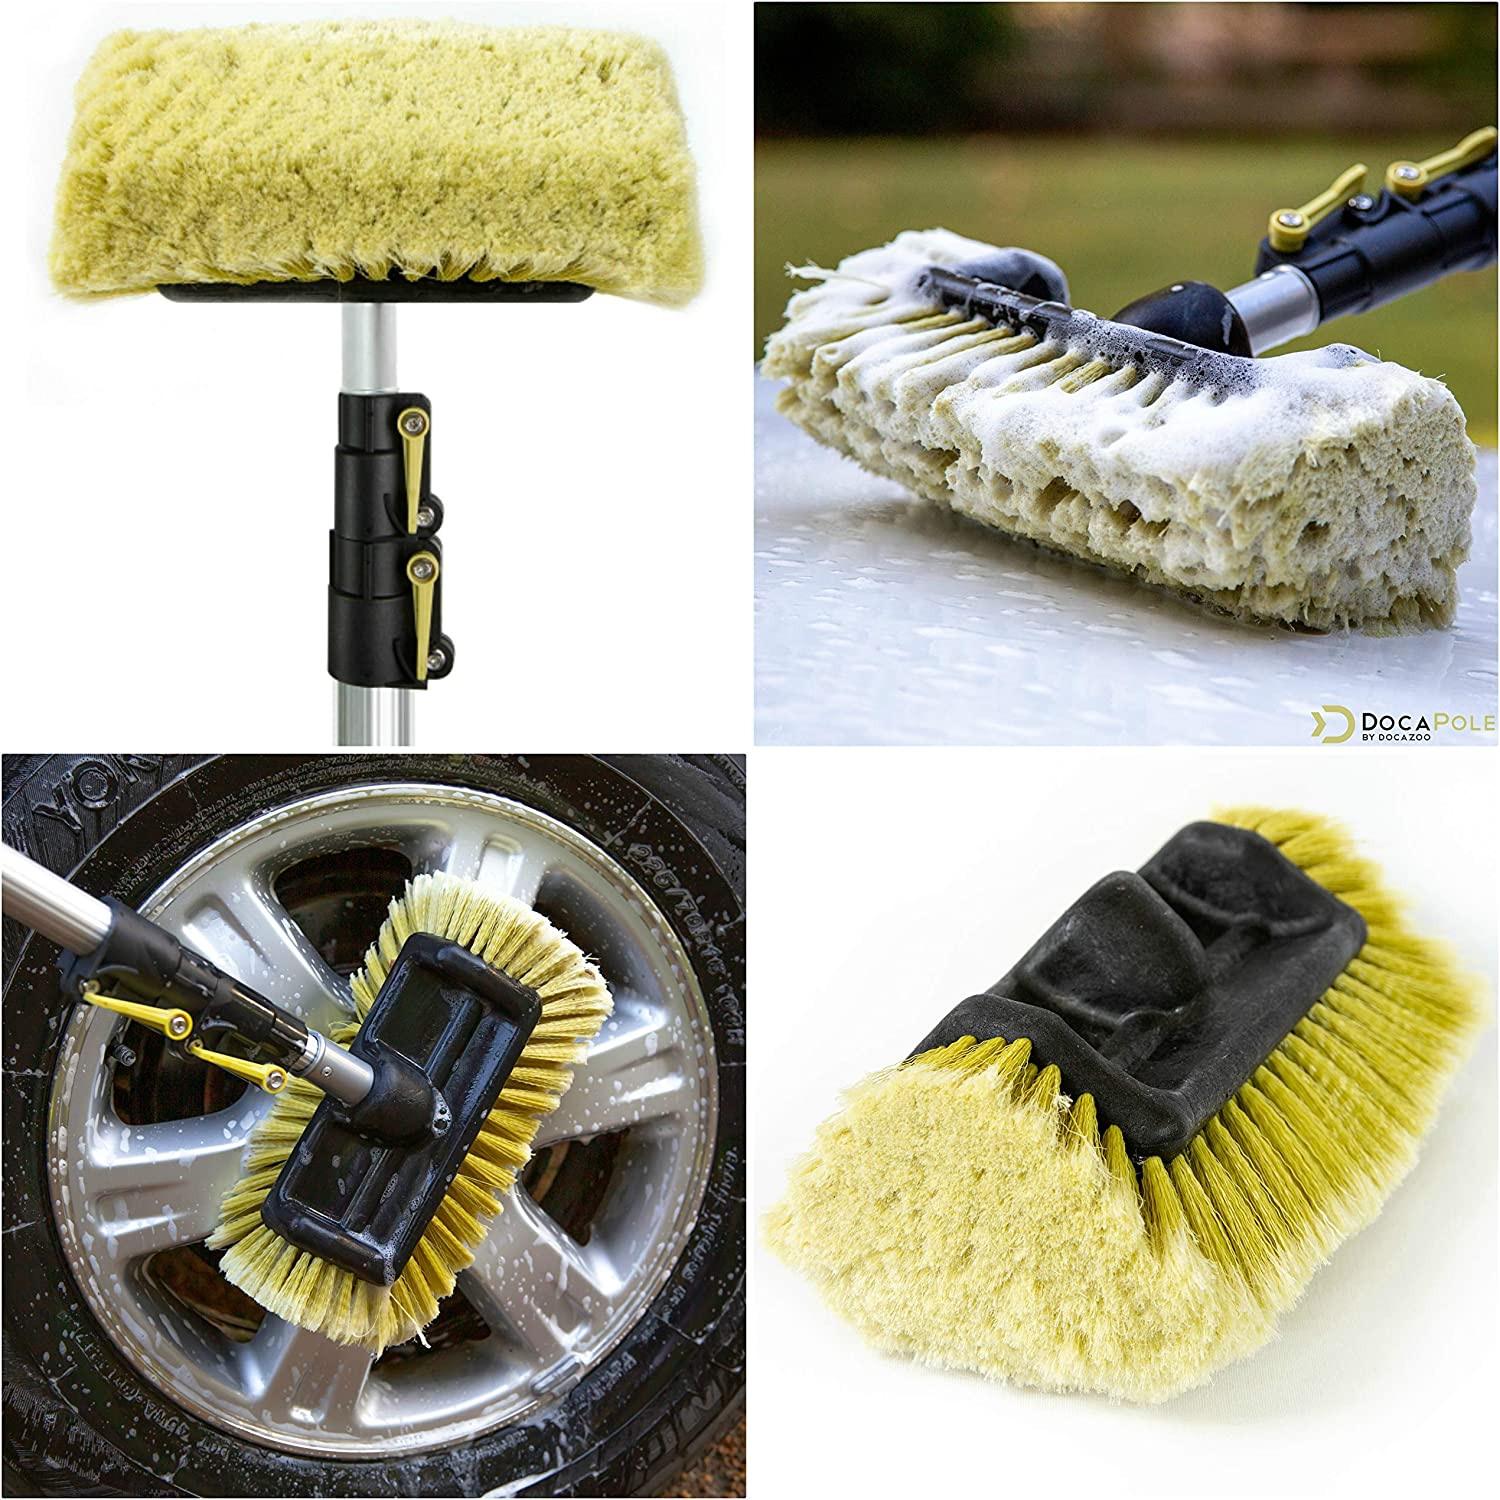 DocaPole 12 Foot High Reach Brush Kit with 5-12 Foot Extension Pole //// Brush Kit Includes 3 Brushes //// Soft Bristle Car Wash Brush //// Medium Bristle Cleaning Brush //// Hard Bristle Deck Brush